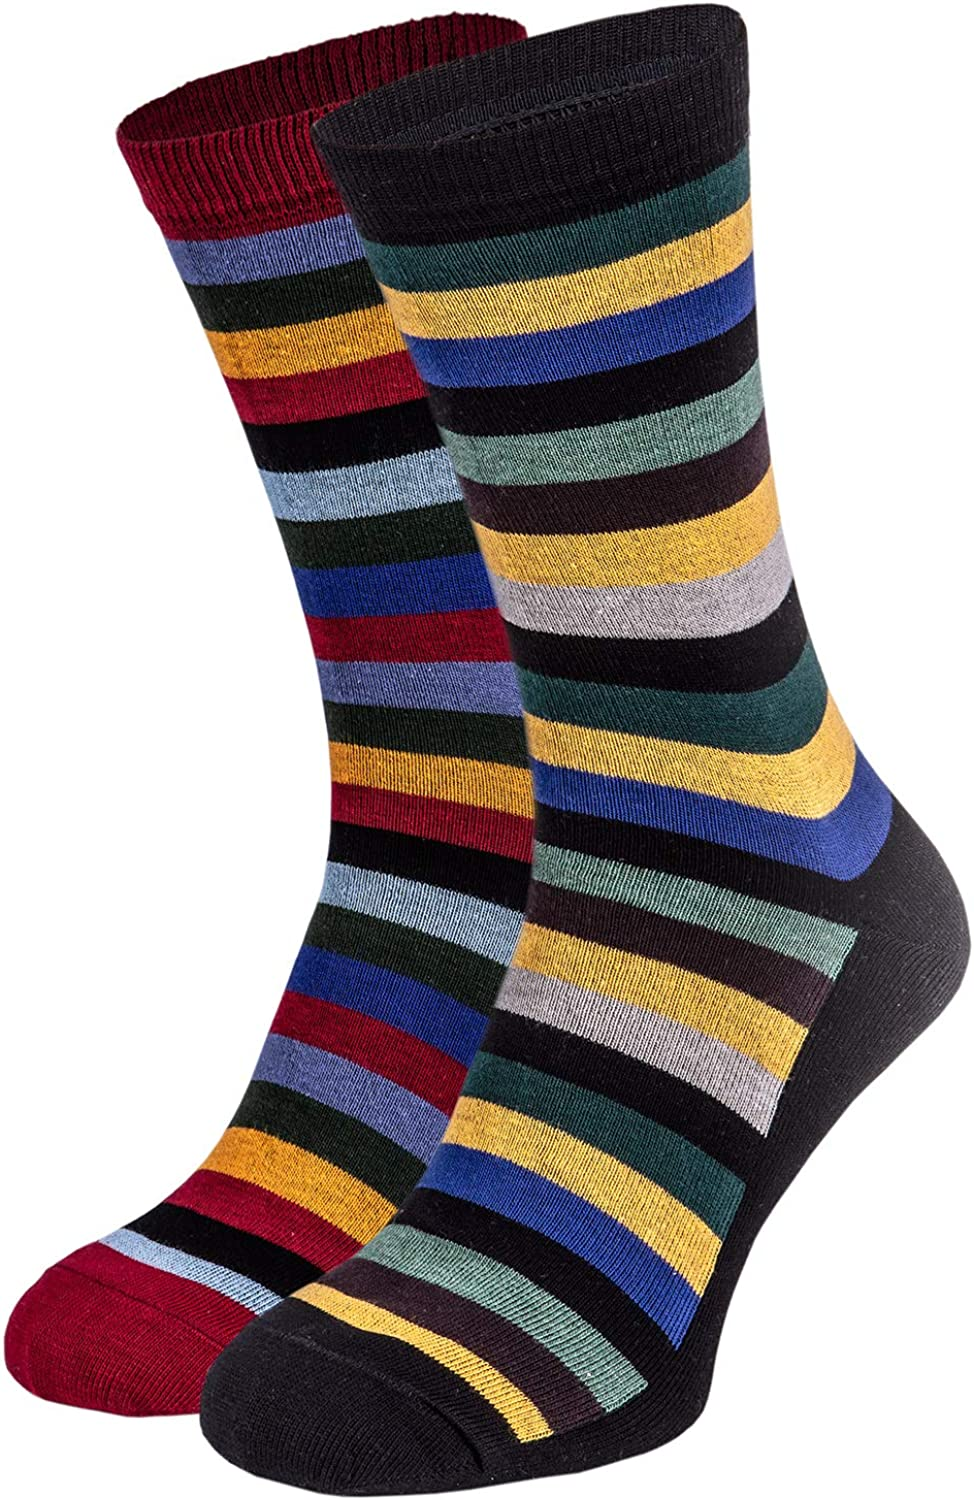 Men's Cotton Colorful Holiday Striped Crew Socks